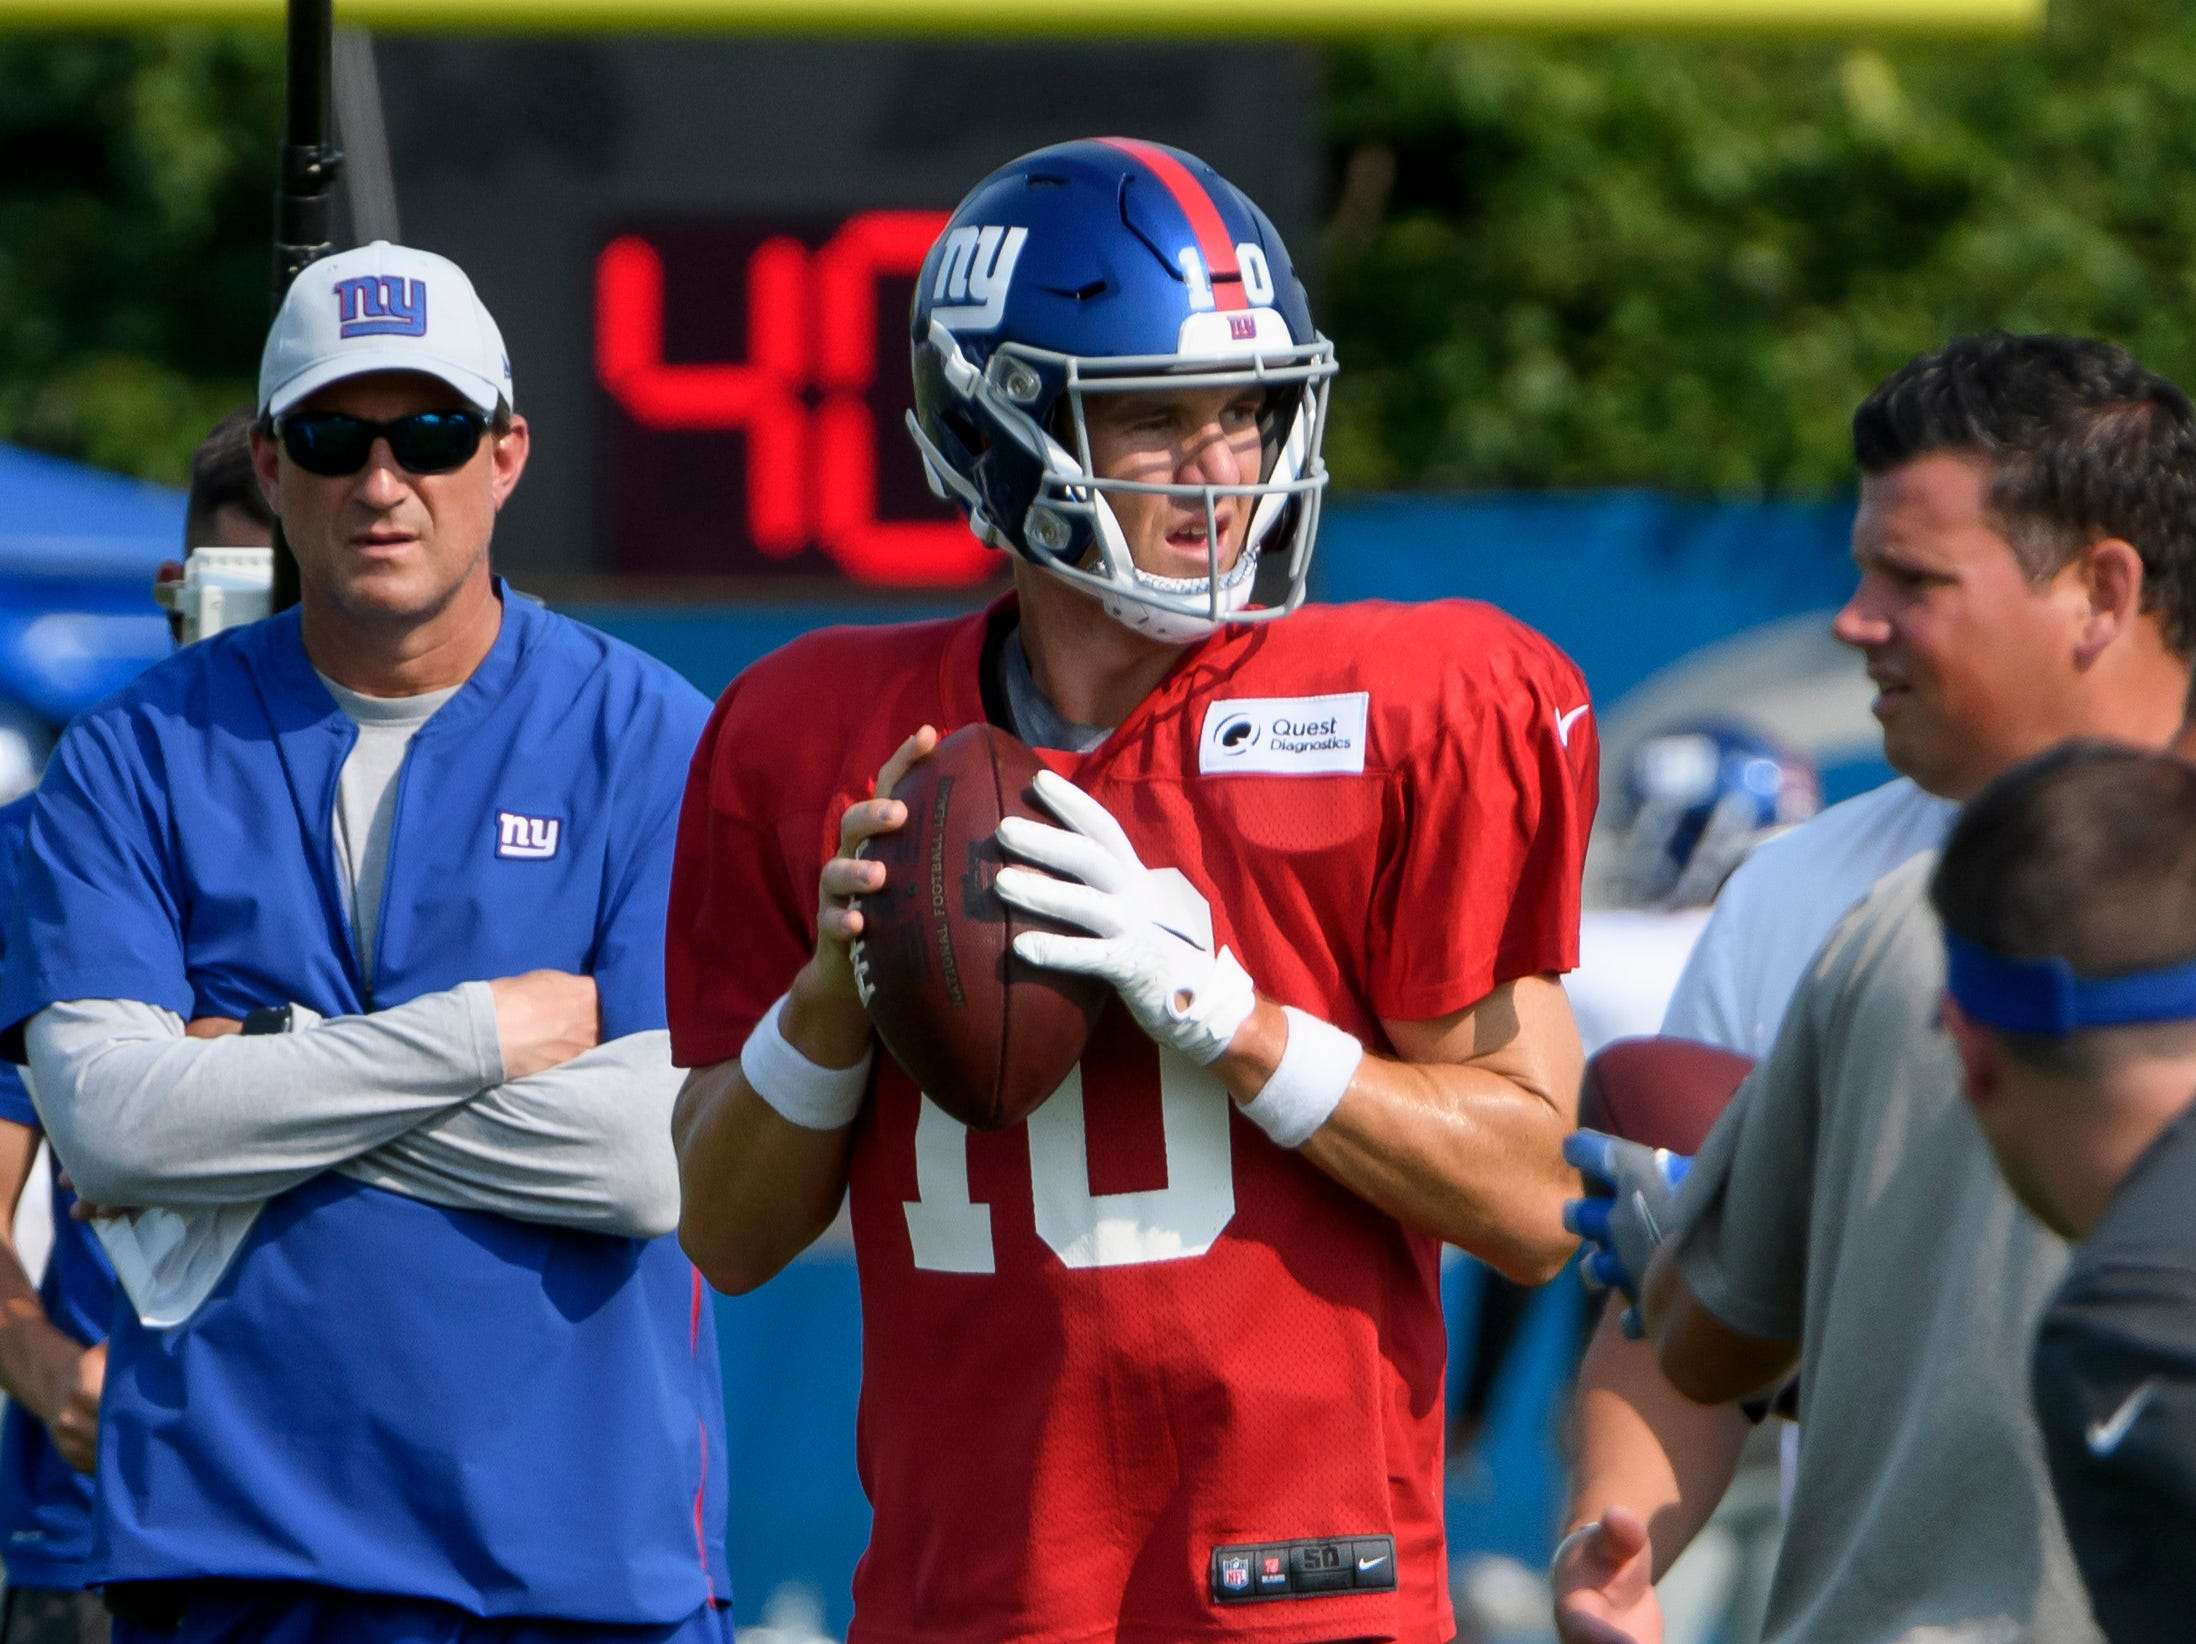 Giants quarterback Eli Manning prepares to throw the ball during practice.